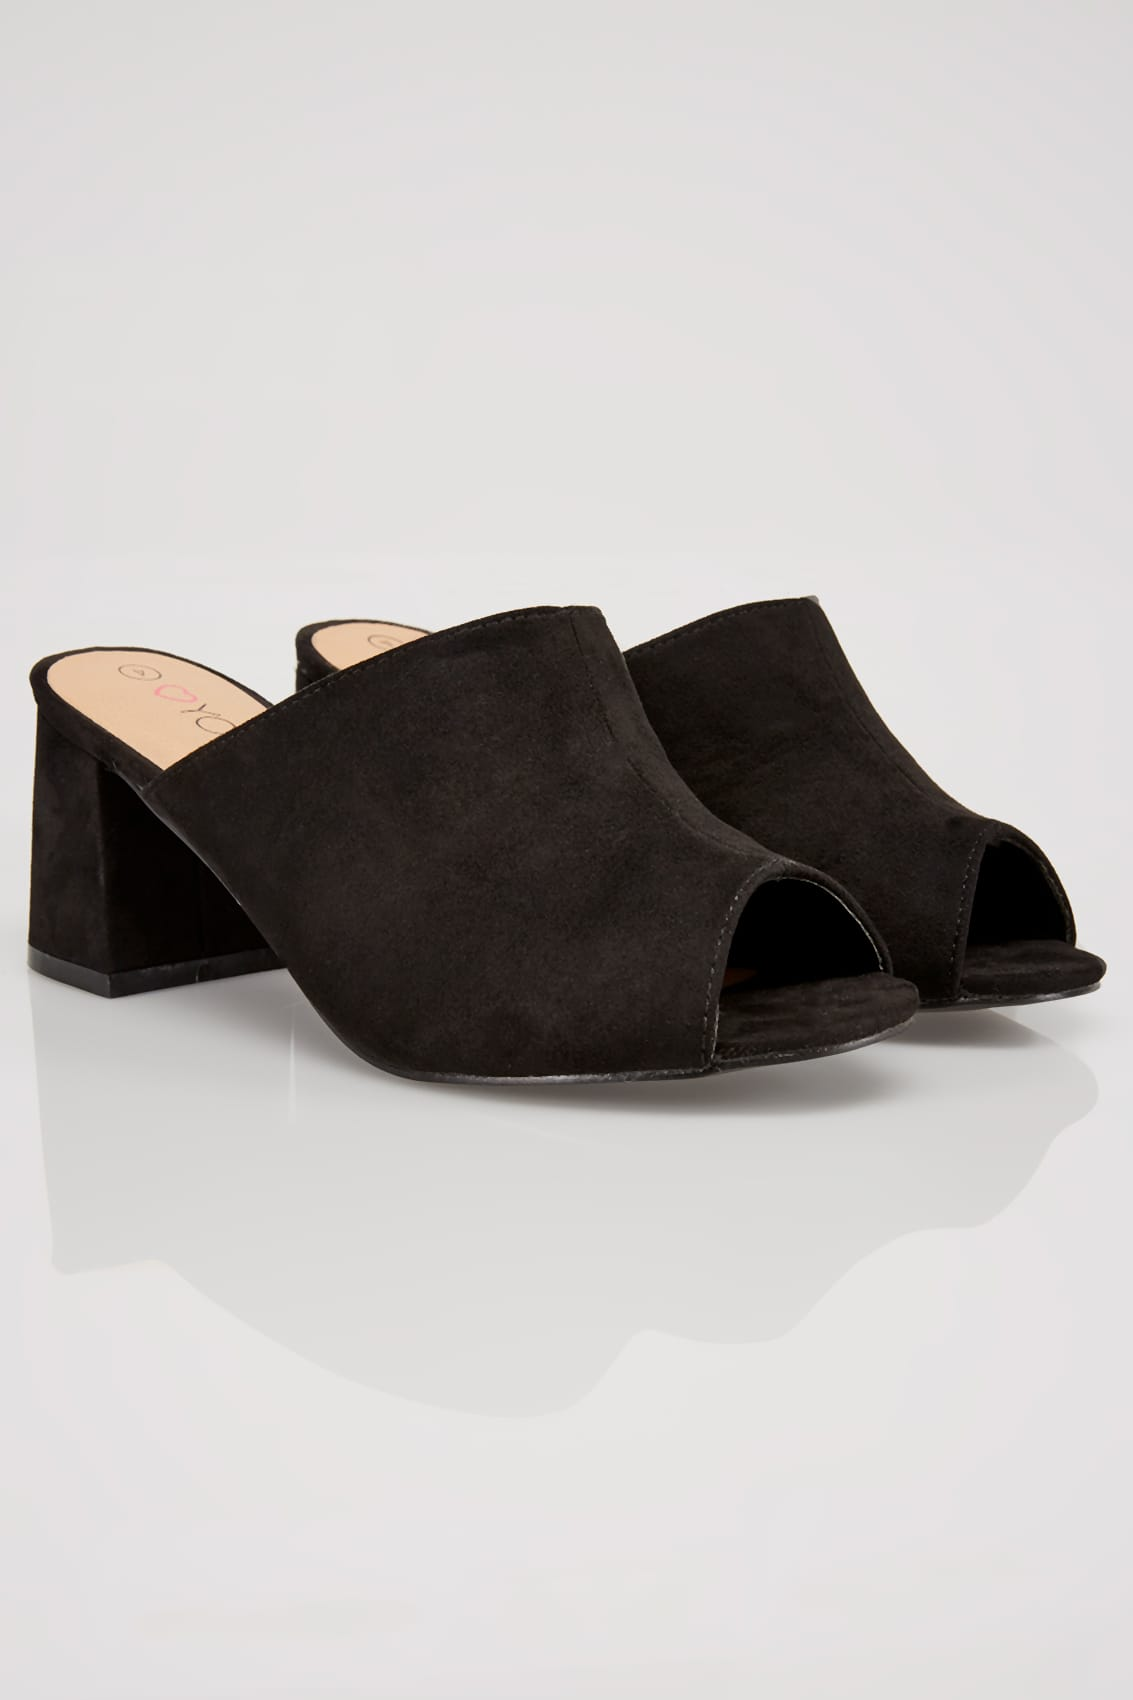 Rooms: Black Mule Heeled Sandals In EEE Fit